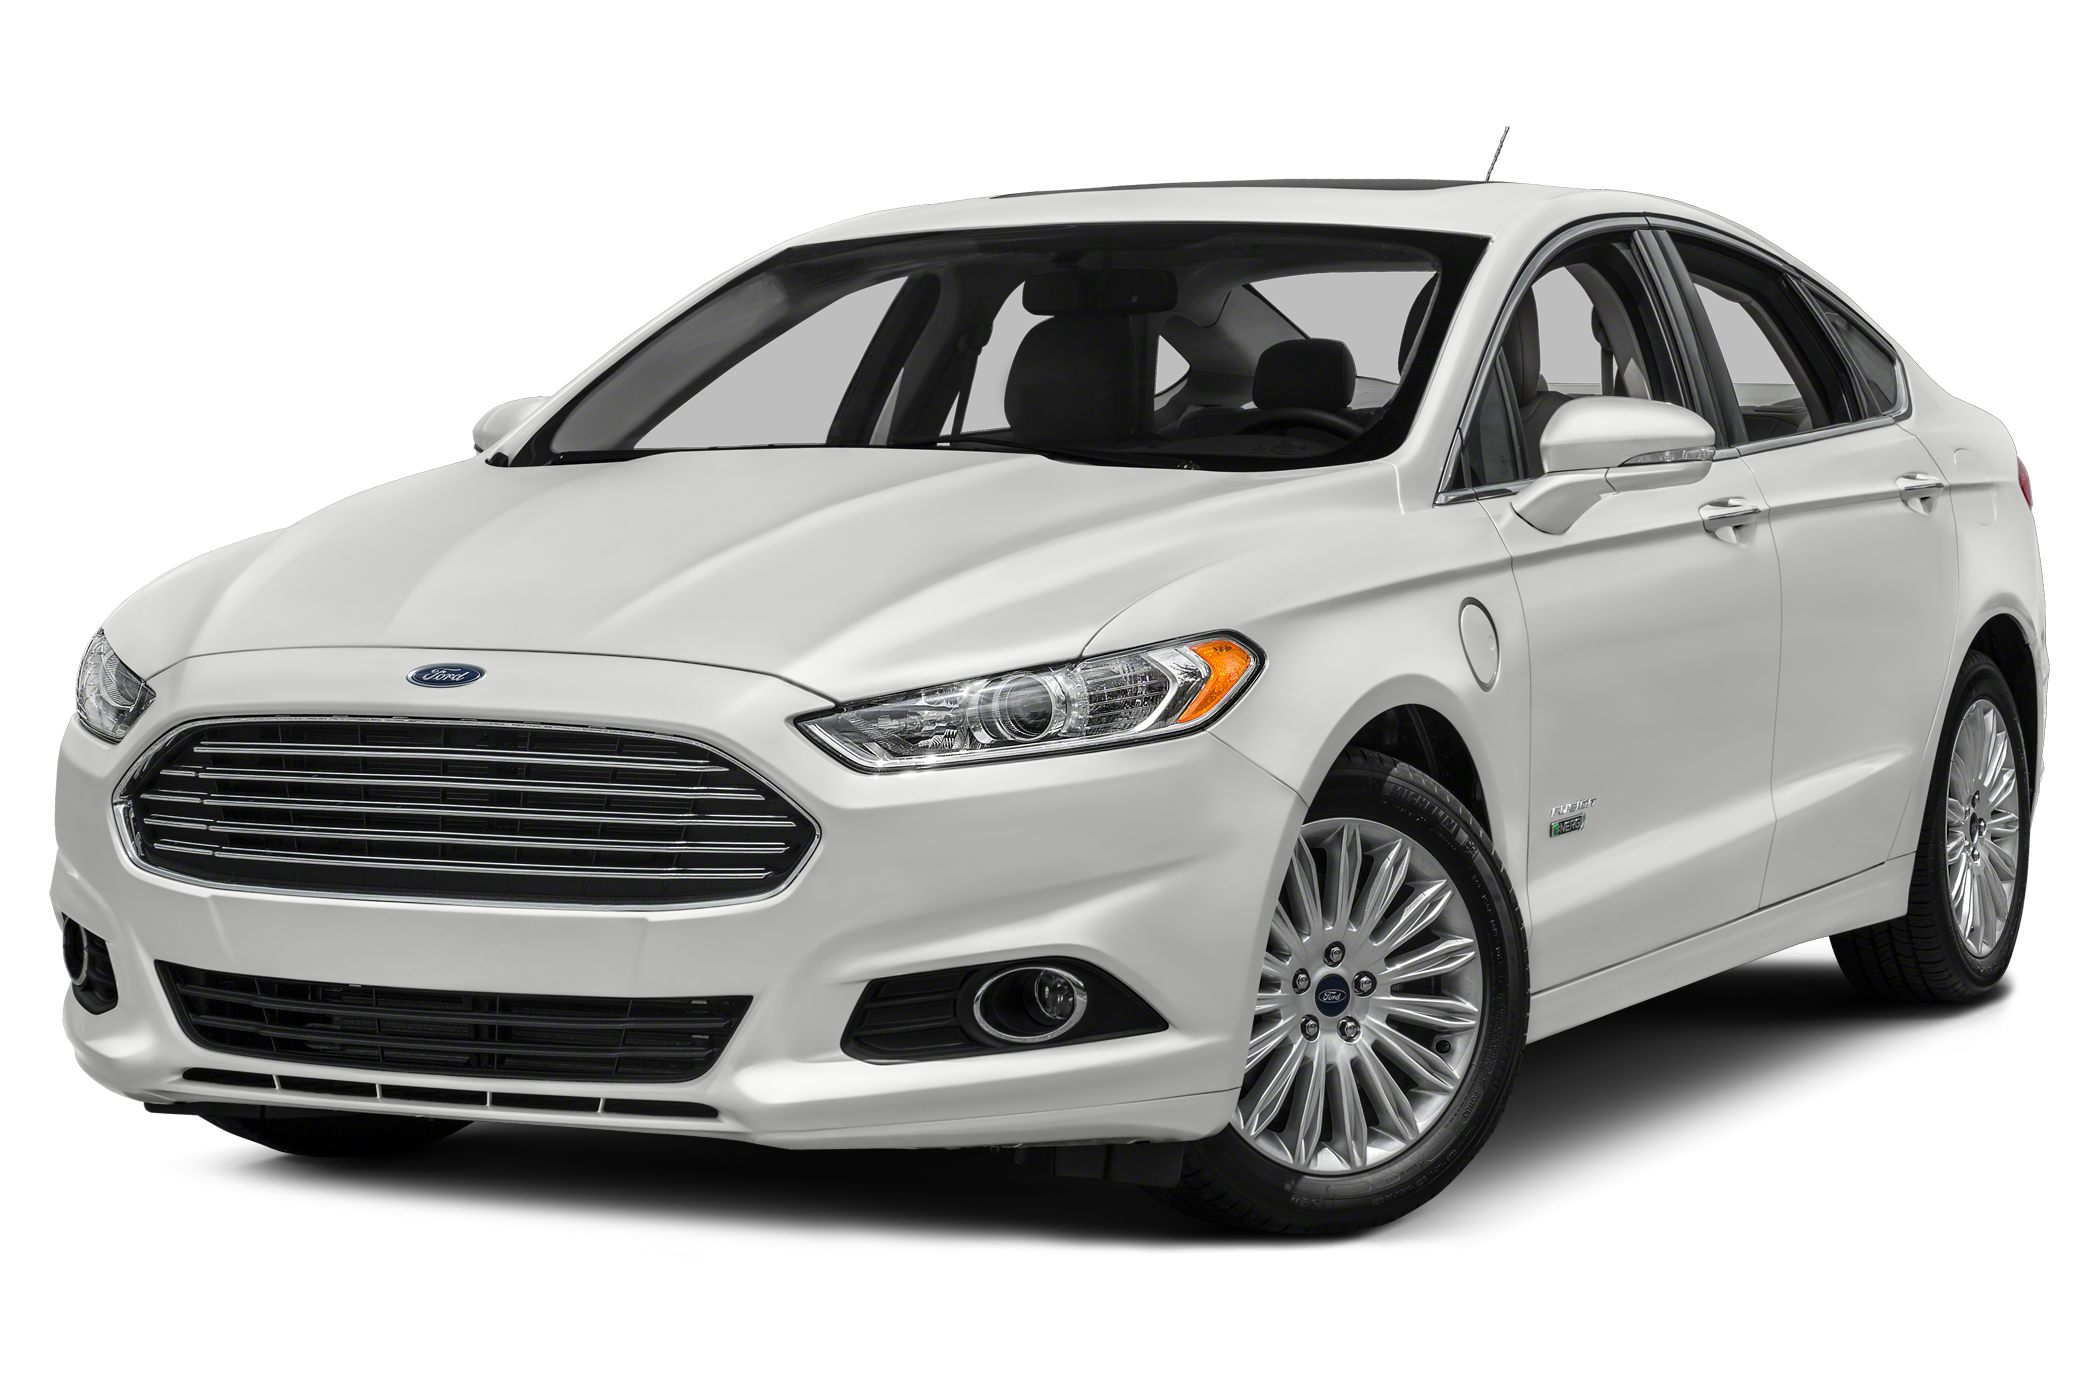 2015 Ford Fusion Energi SE Luxury Sedan for sale in Vista for $36,420 with 6 miles.